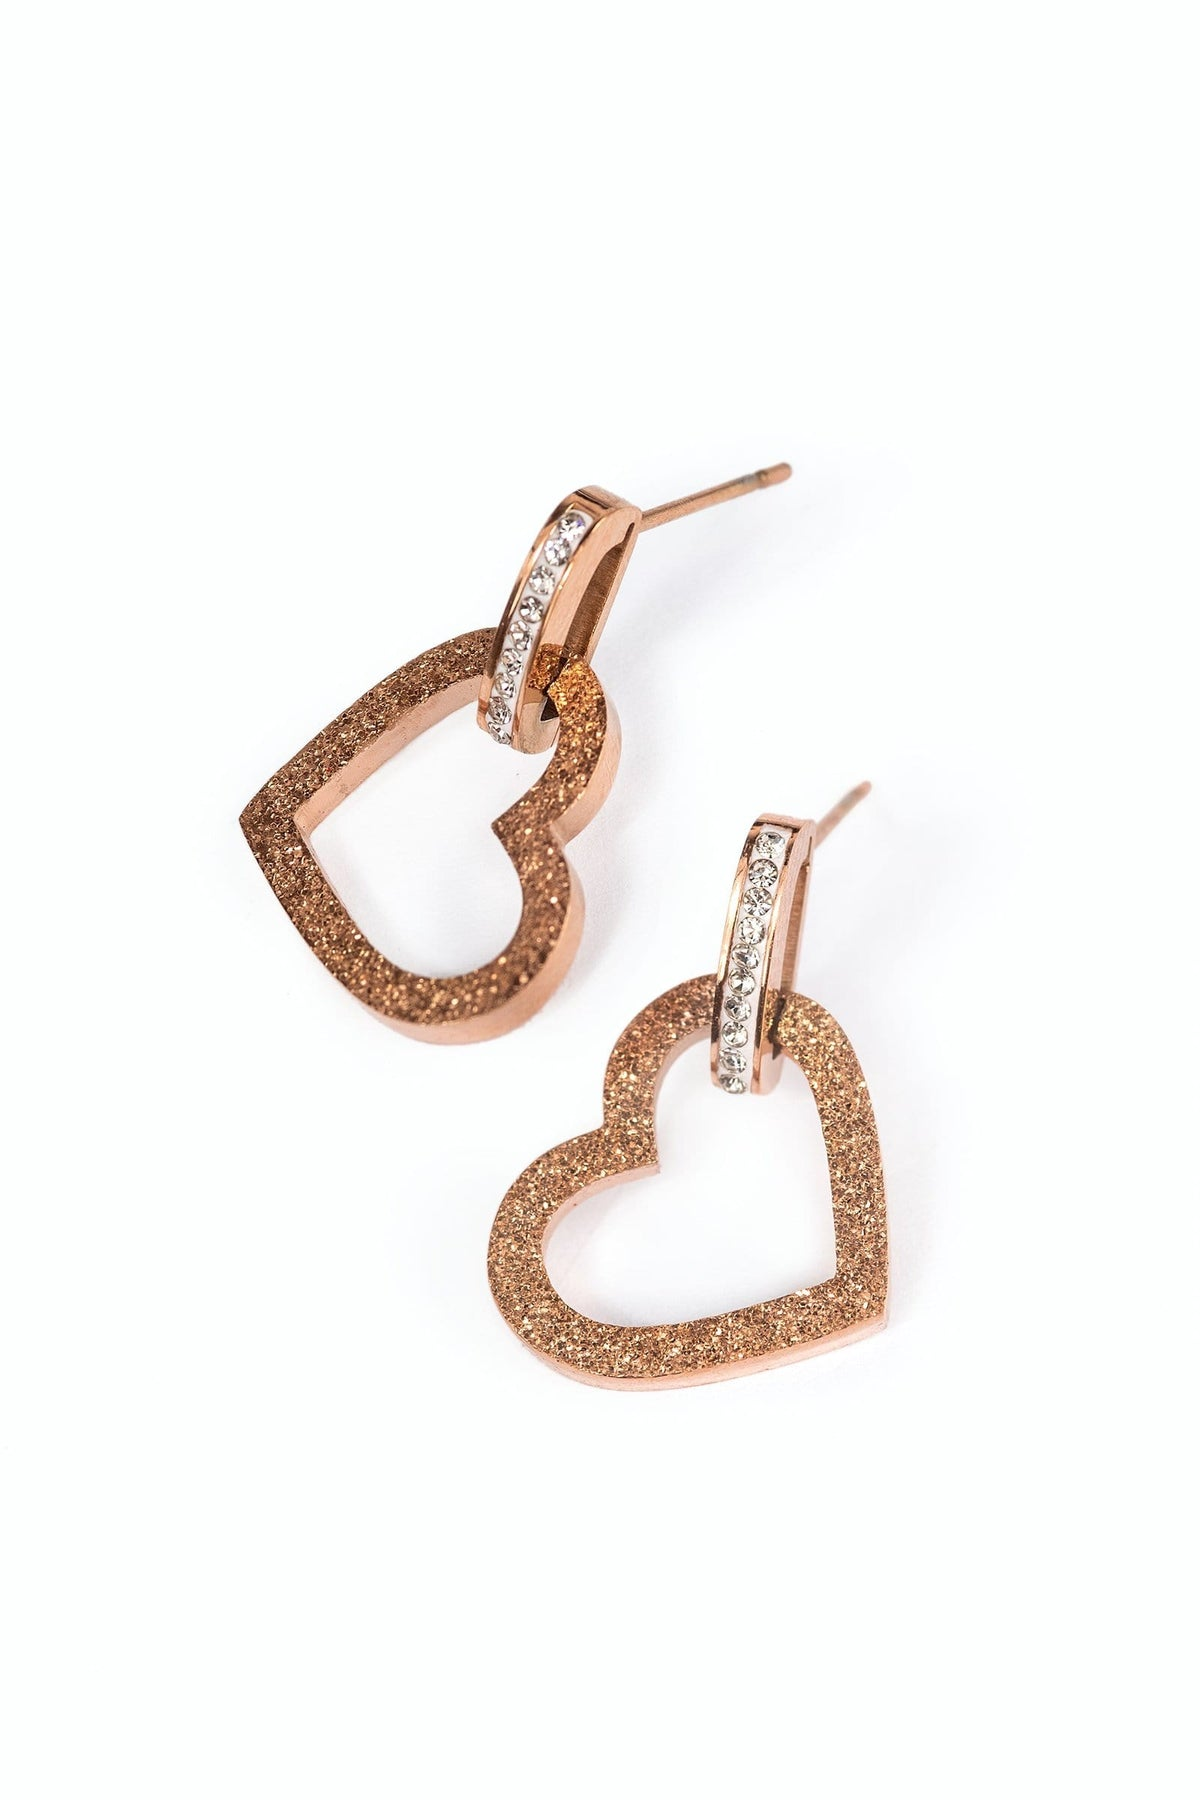 Rose gold colored heart shape earrings tiny with zircon crystals | J.ING women's accessories